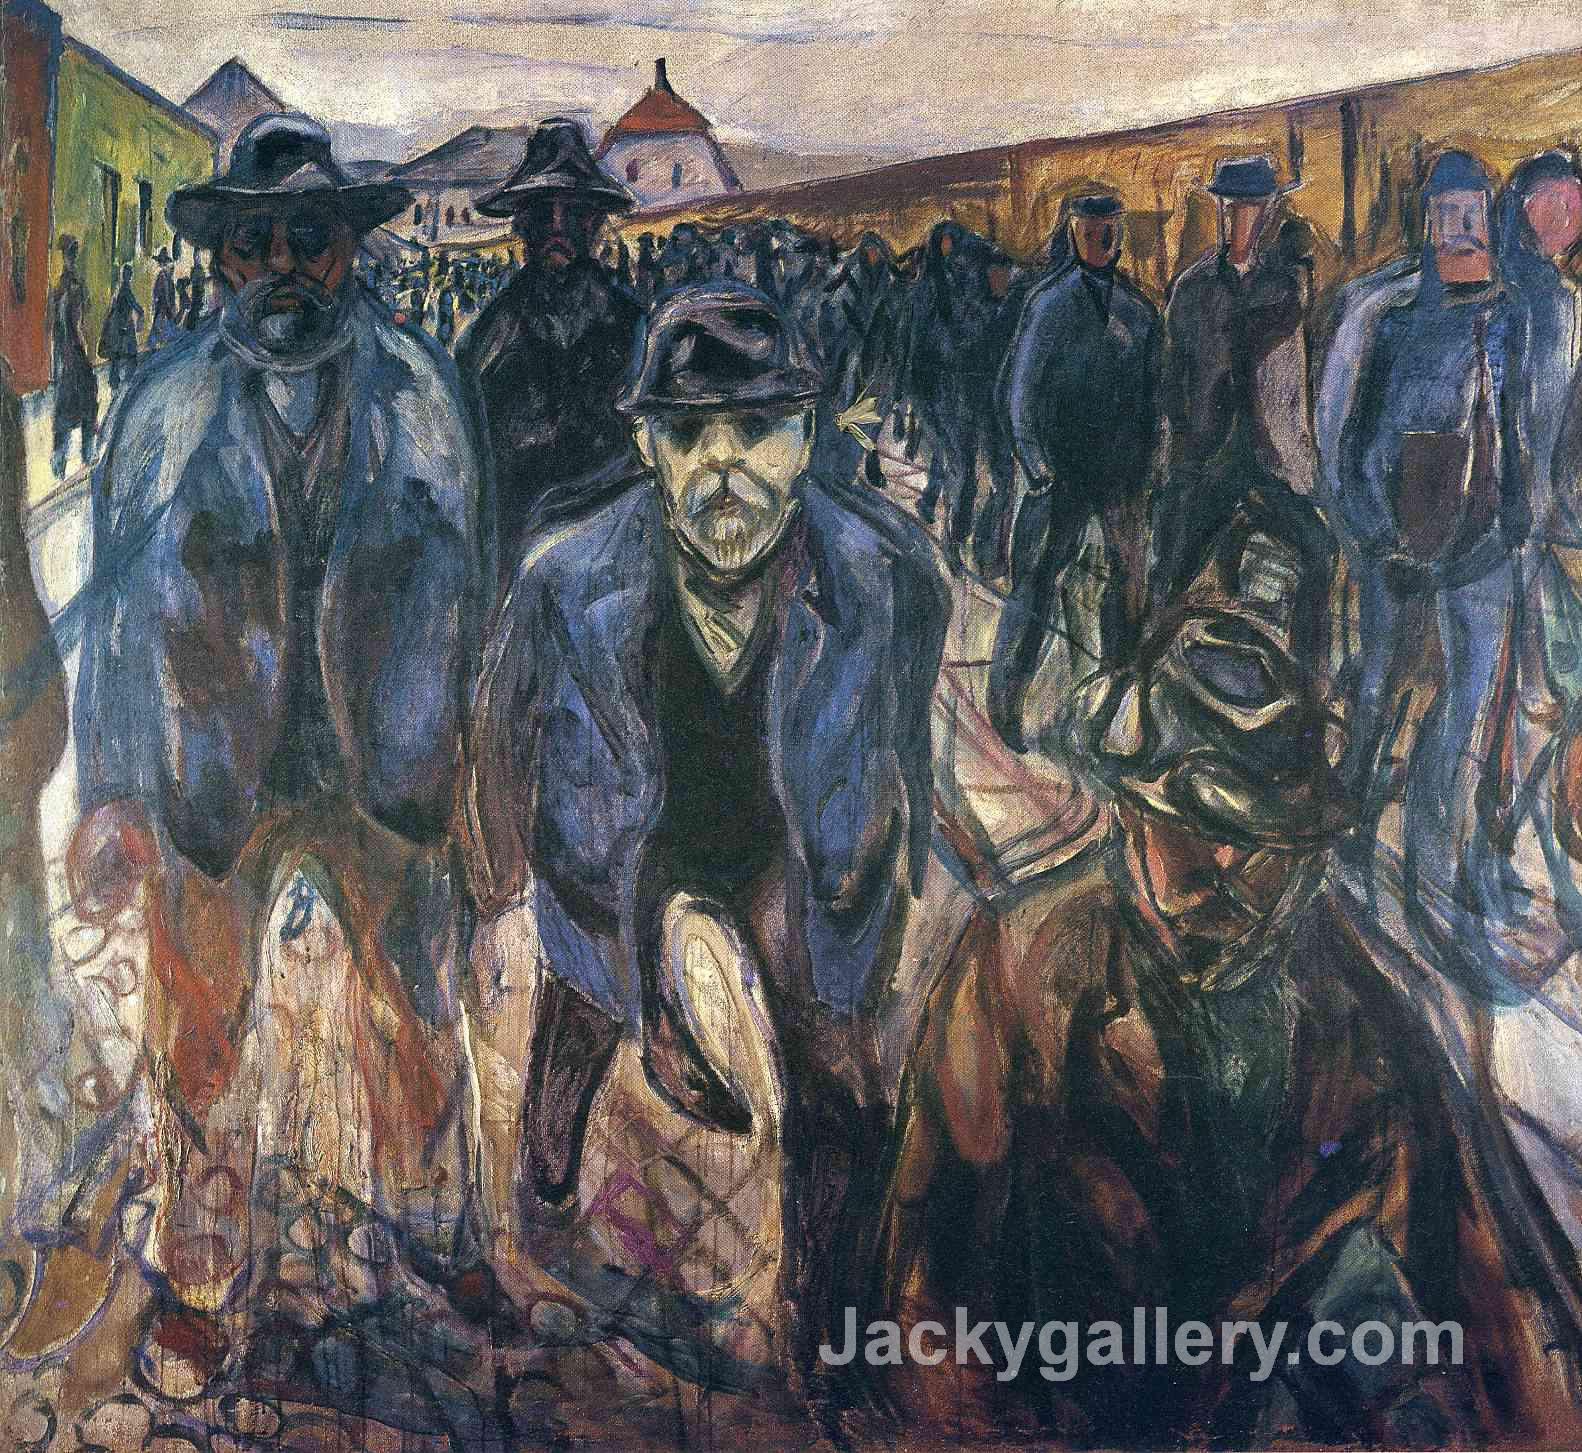 Workers on Their Way Home by Edvard Munch paintings reproduction